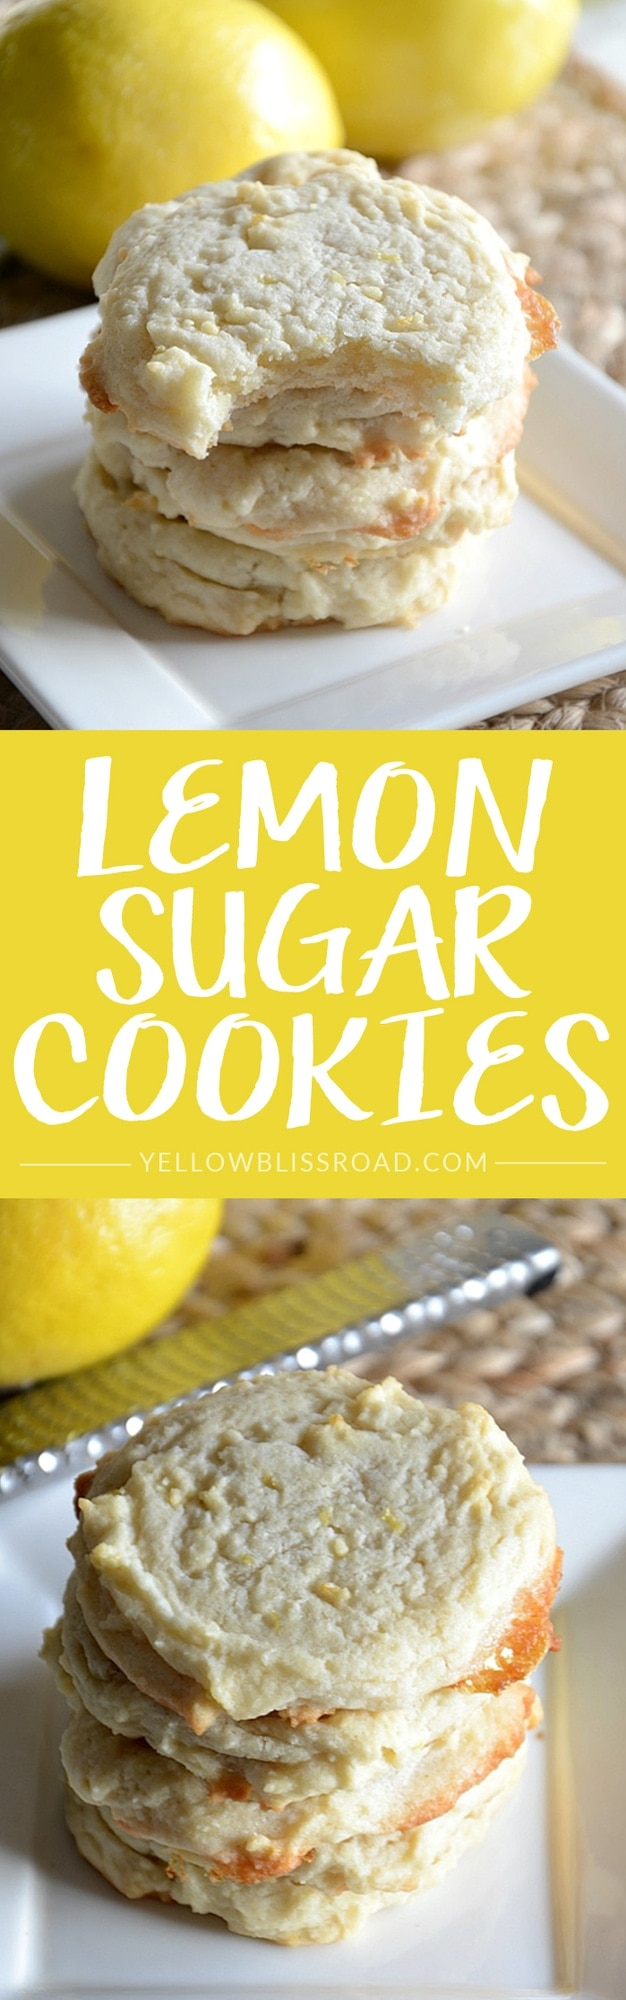 Lemon Sugar Cookie - Sweet and tart, and a delicious spring treat